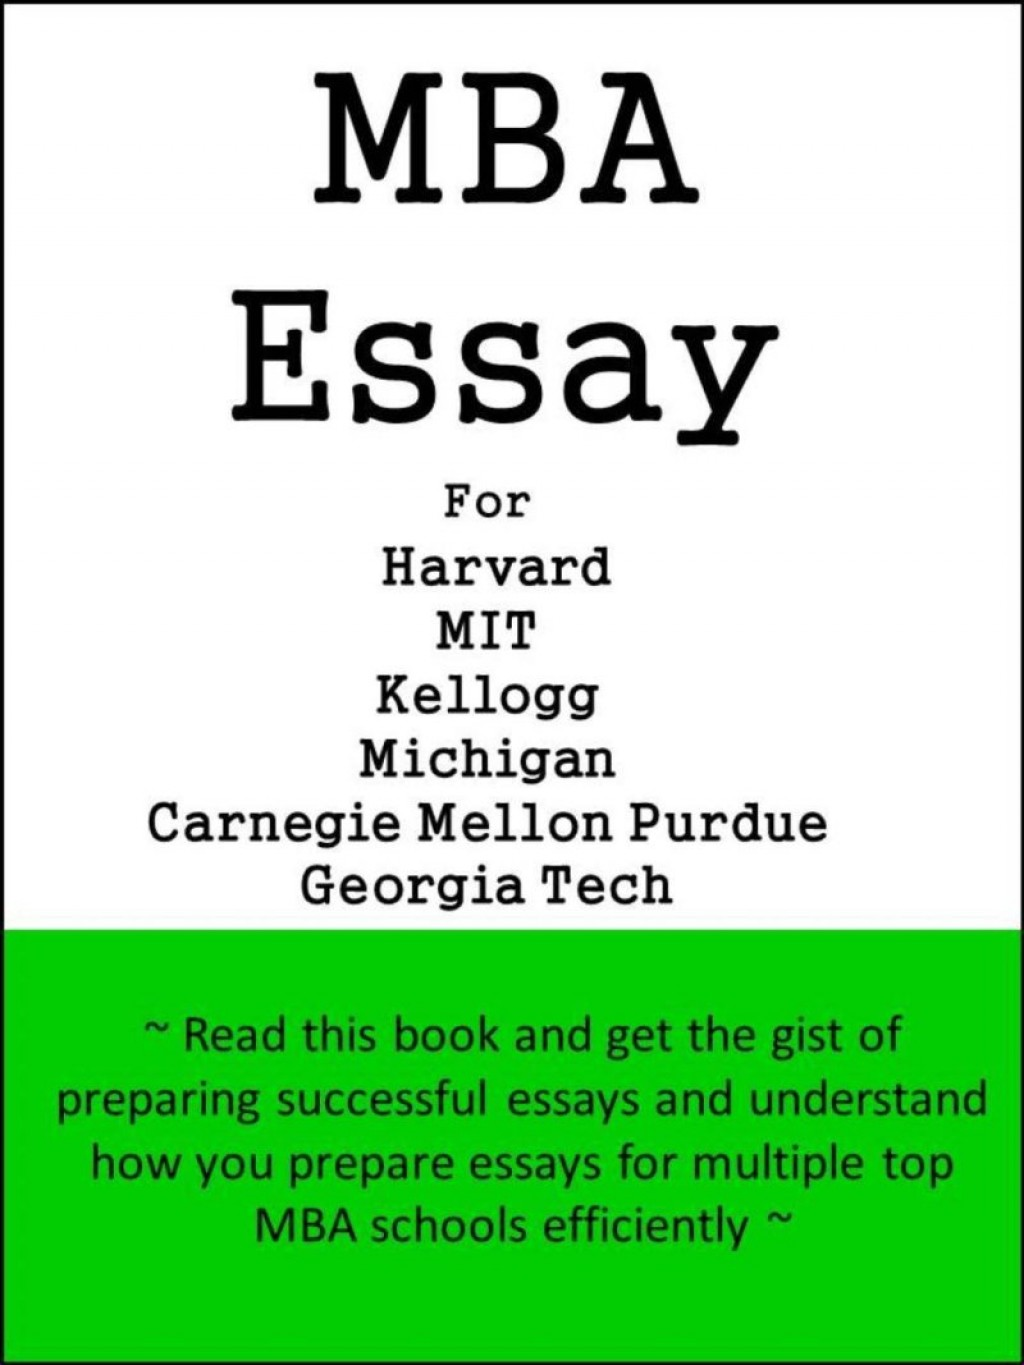 001 Essay Example Carnegie Mellon Kellogg Mba Examples Poemsrom Co For Harvard Mit Michigan Purdue Georgia Tech 205 Striking Sat Requirement Questions Large